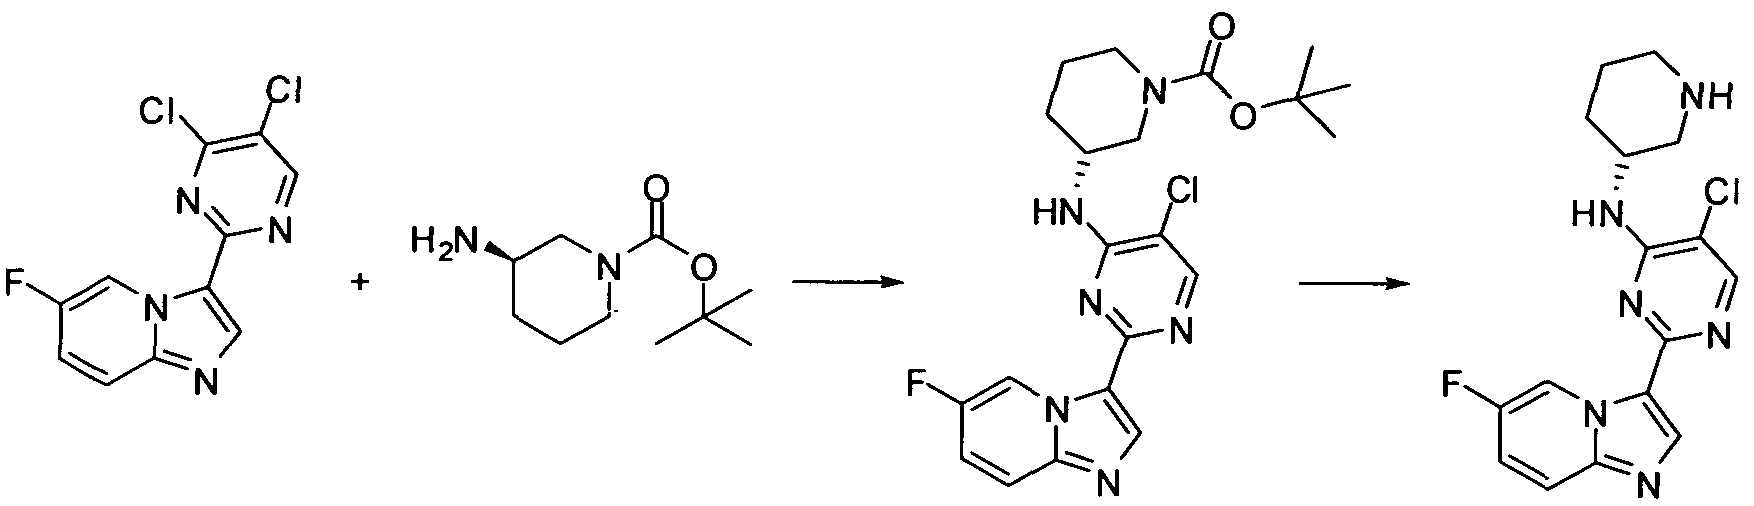 Wo2011076419a1 Imidazopyridine Derivatives As Jak Inhibitors Vacuum Tube Schematics Se At20 417a Amplifier Figure Imgf000136 0001